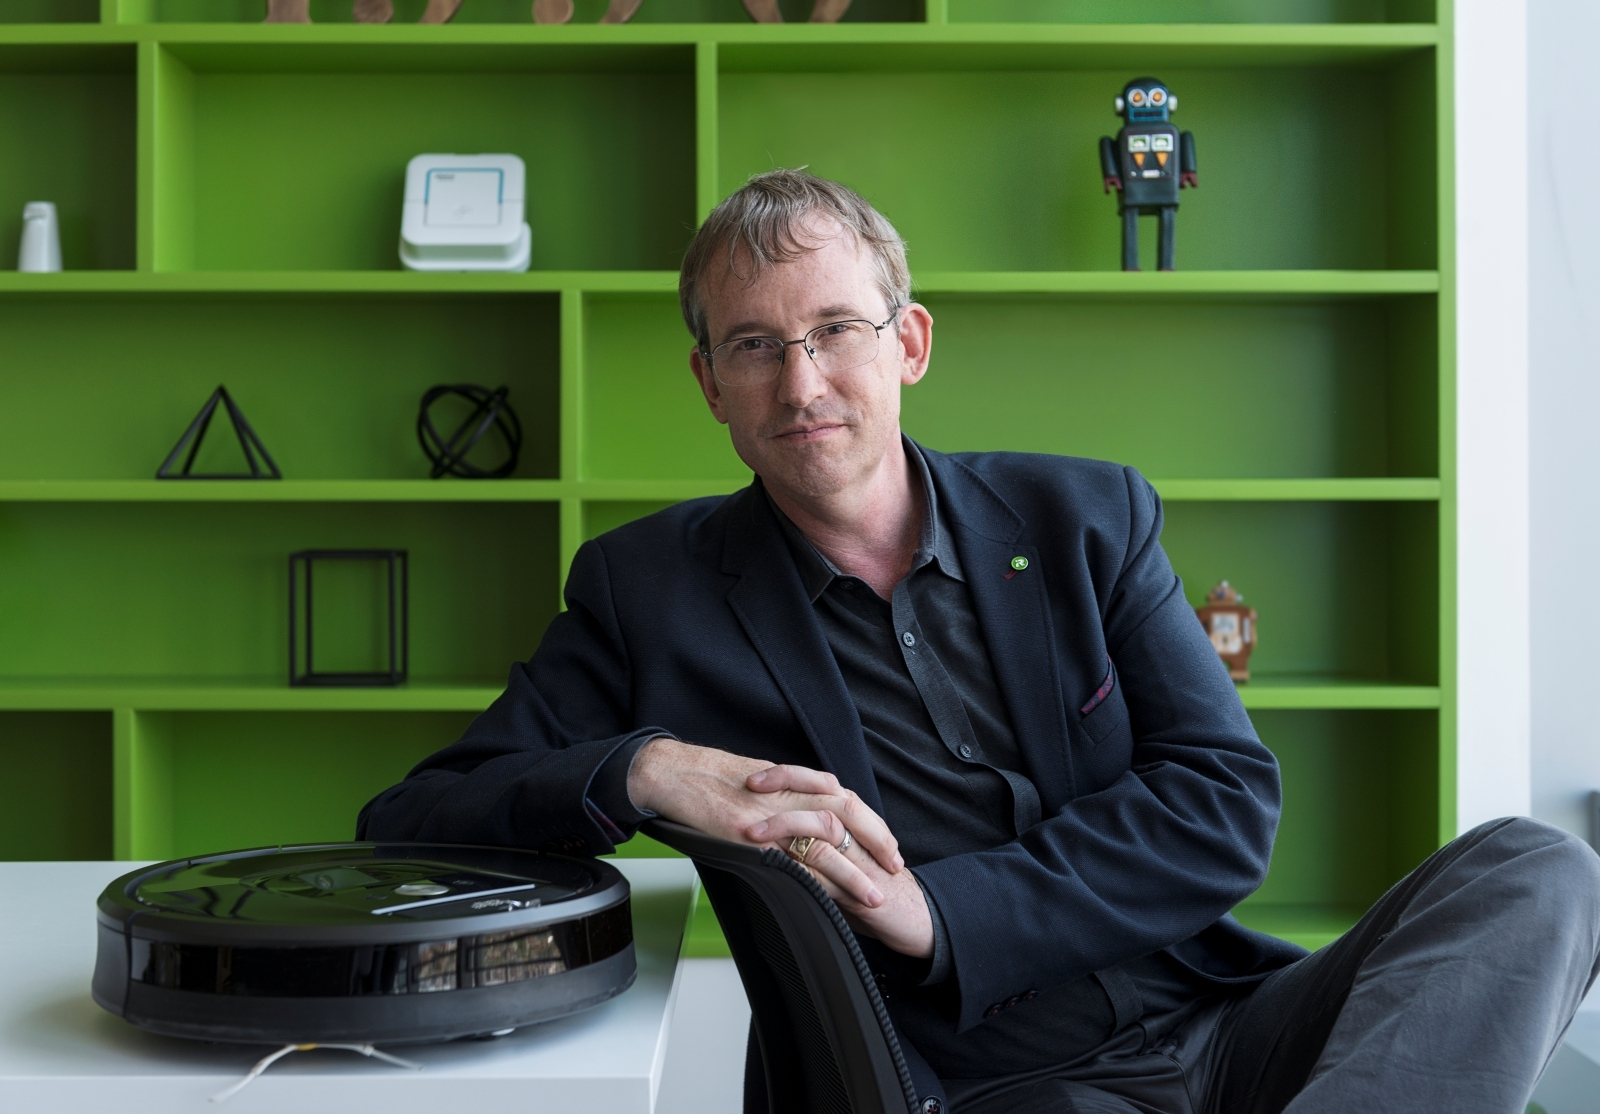 New Roomba Vacuum Collects Not Just Dirt, But Private Household Data